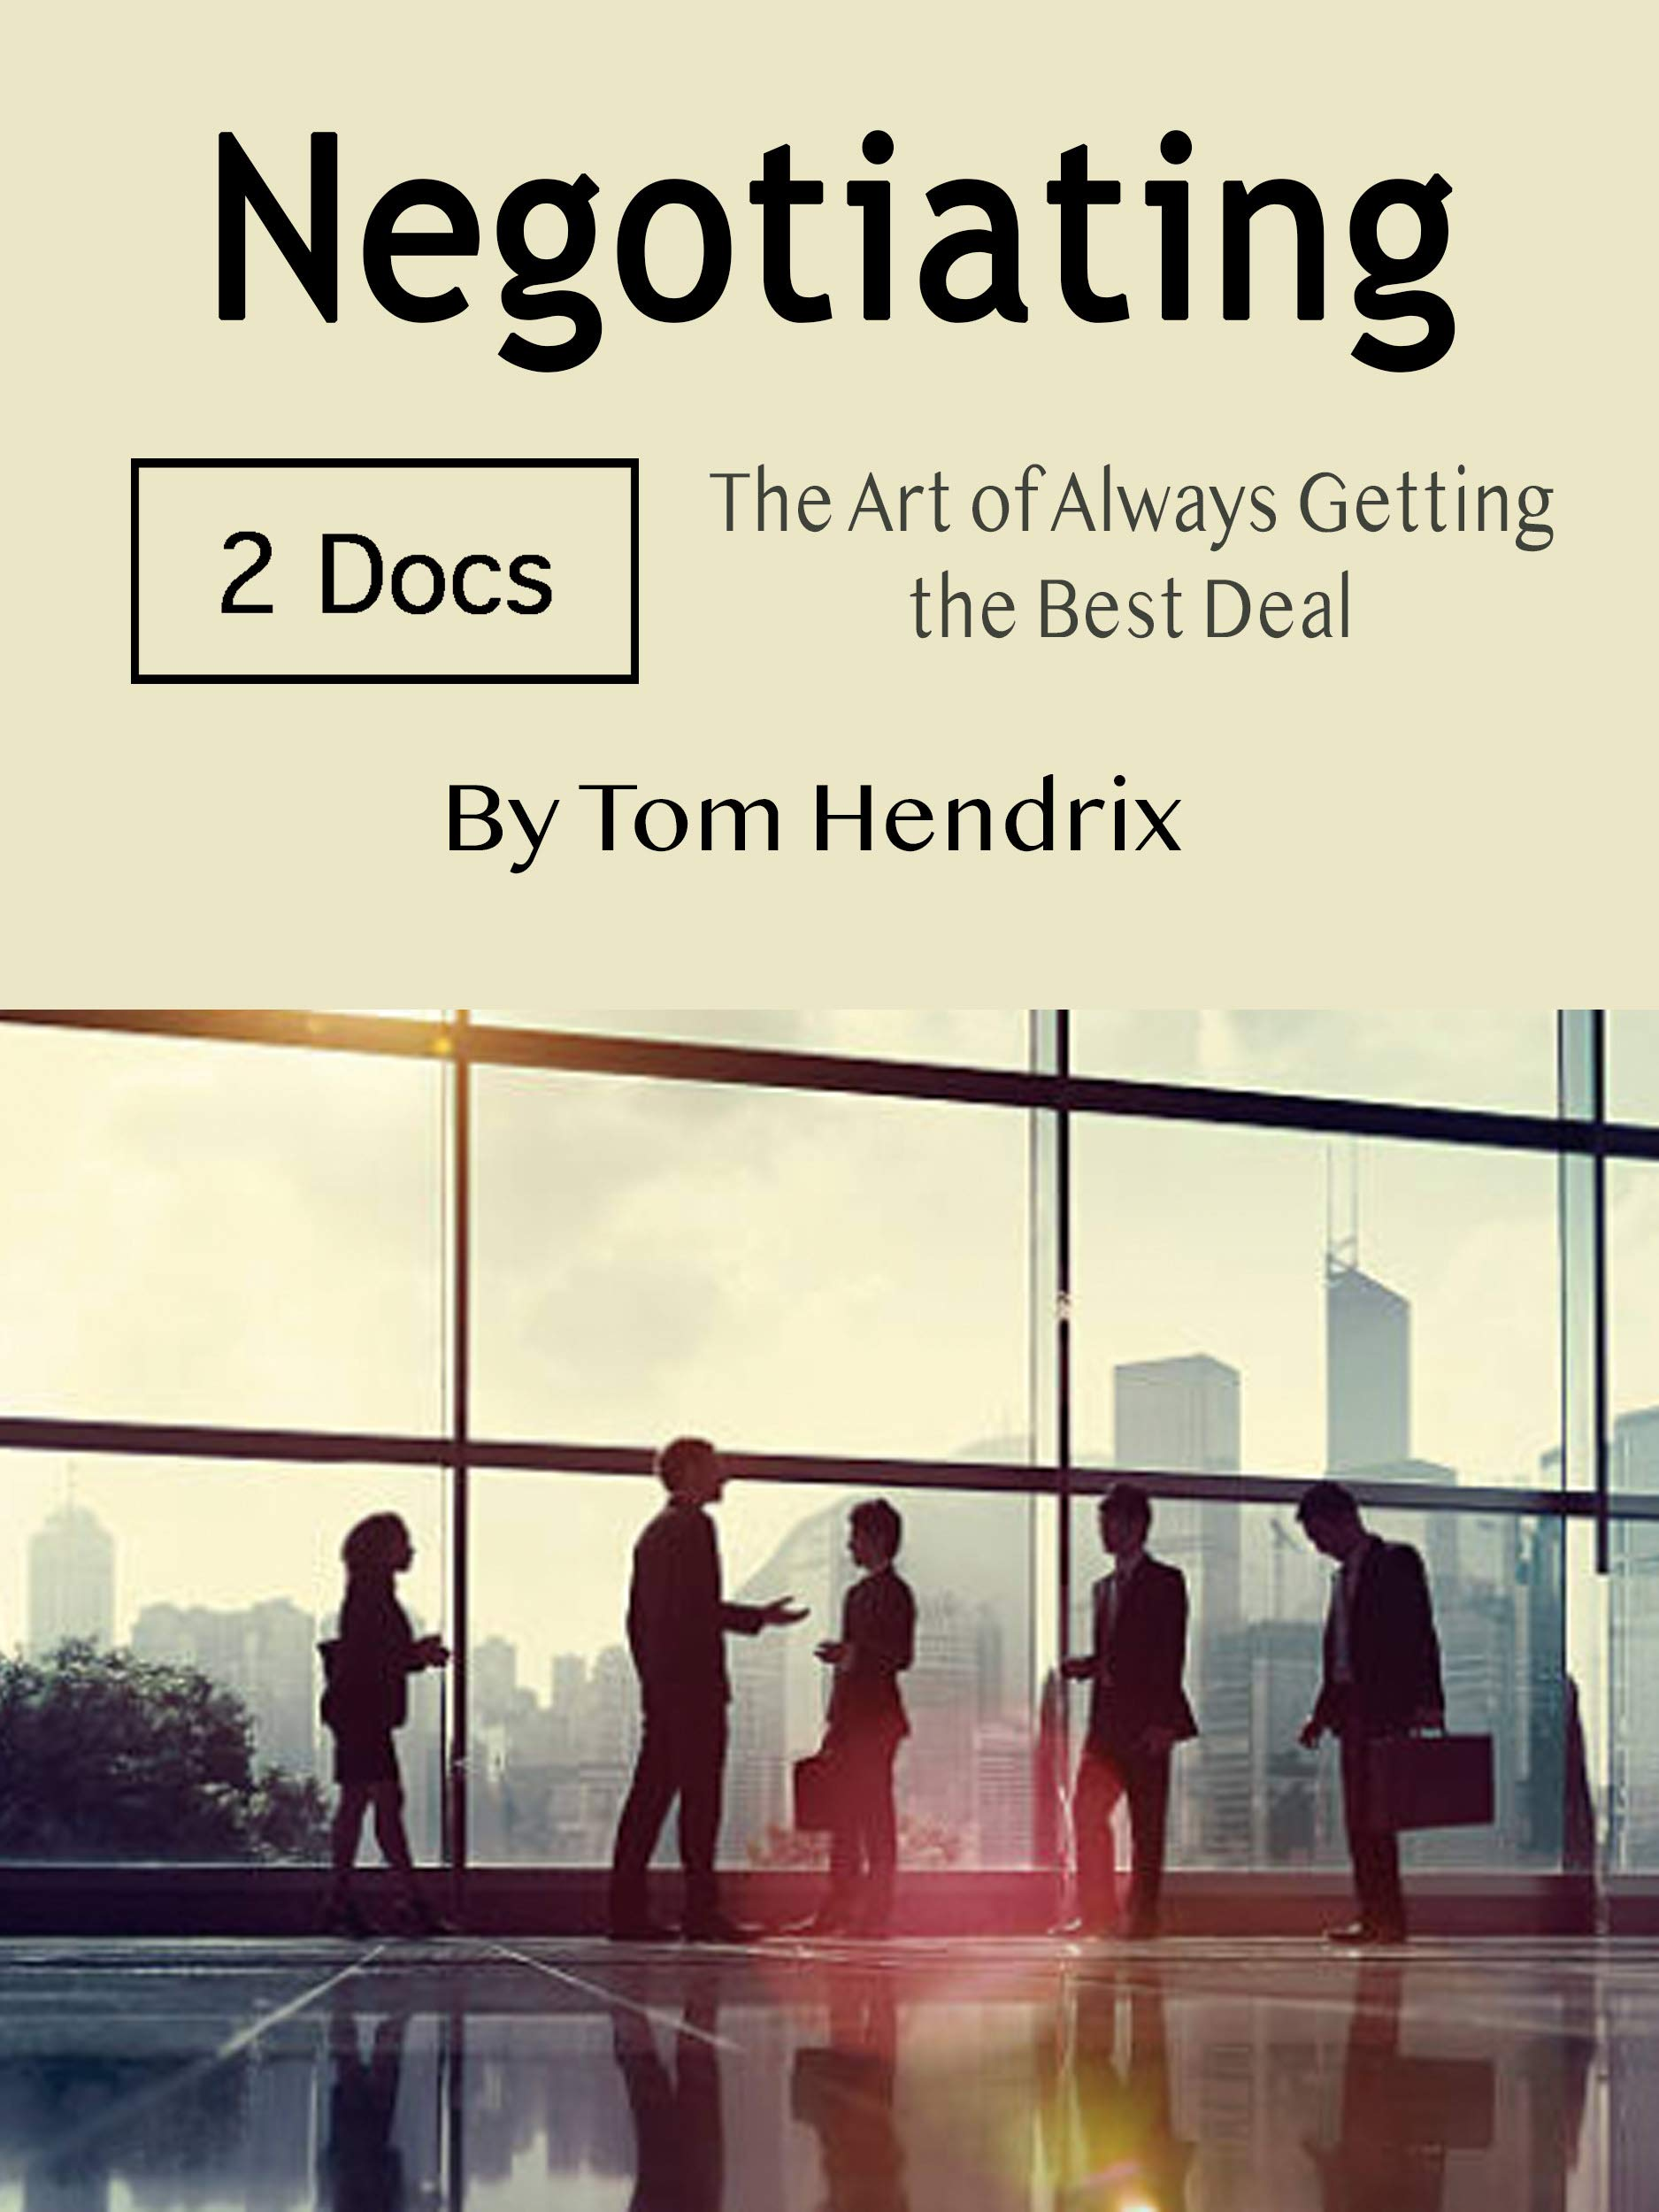 Negotiating: The Art of Always Getting the Best Deal